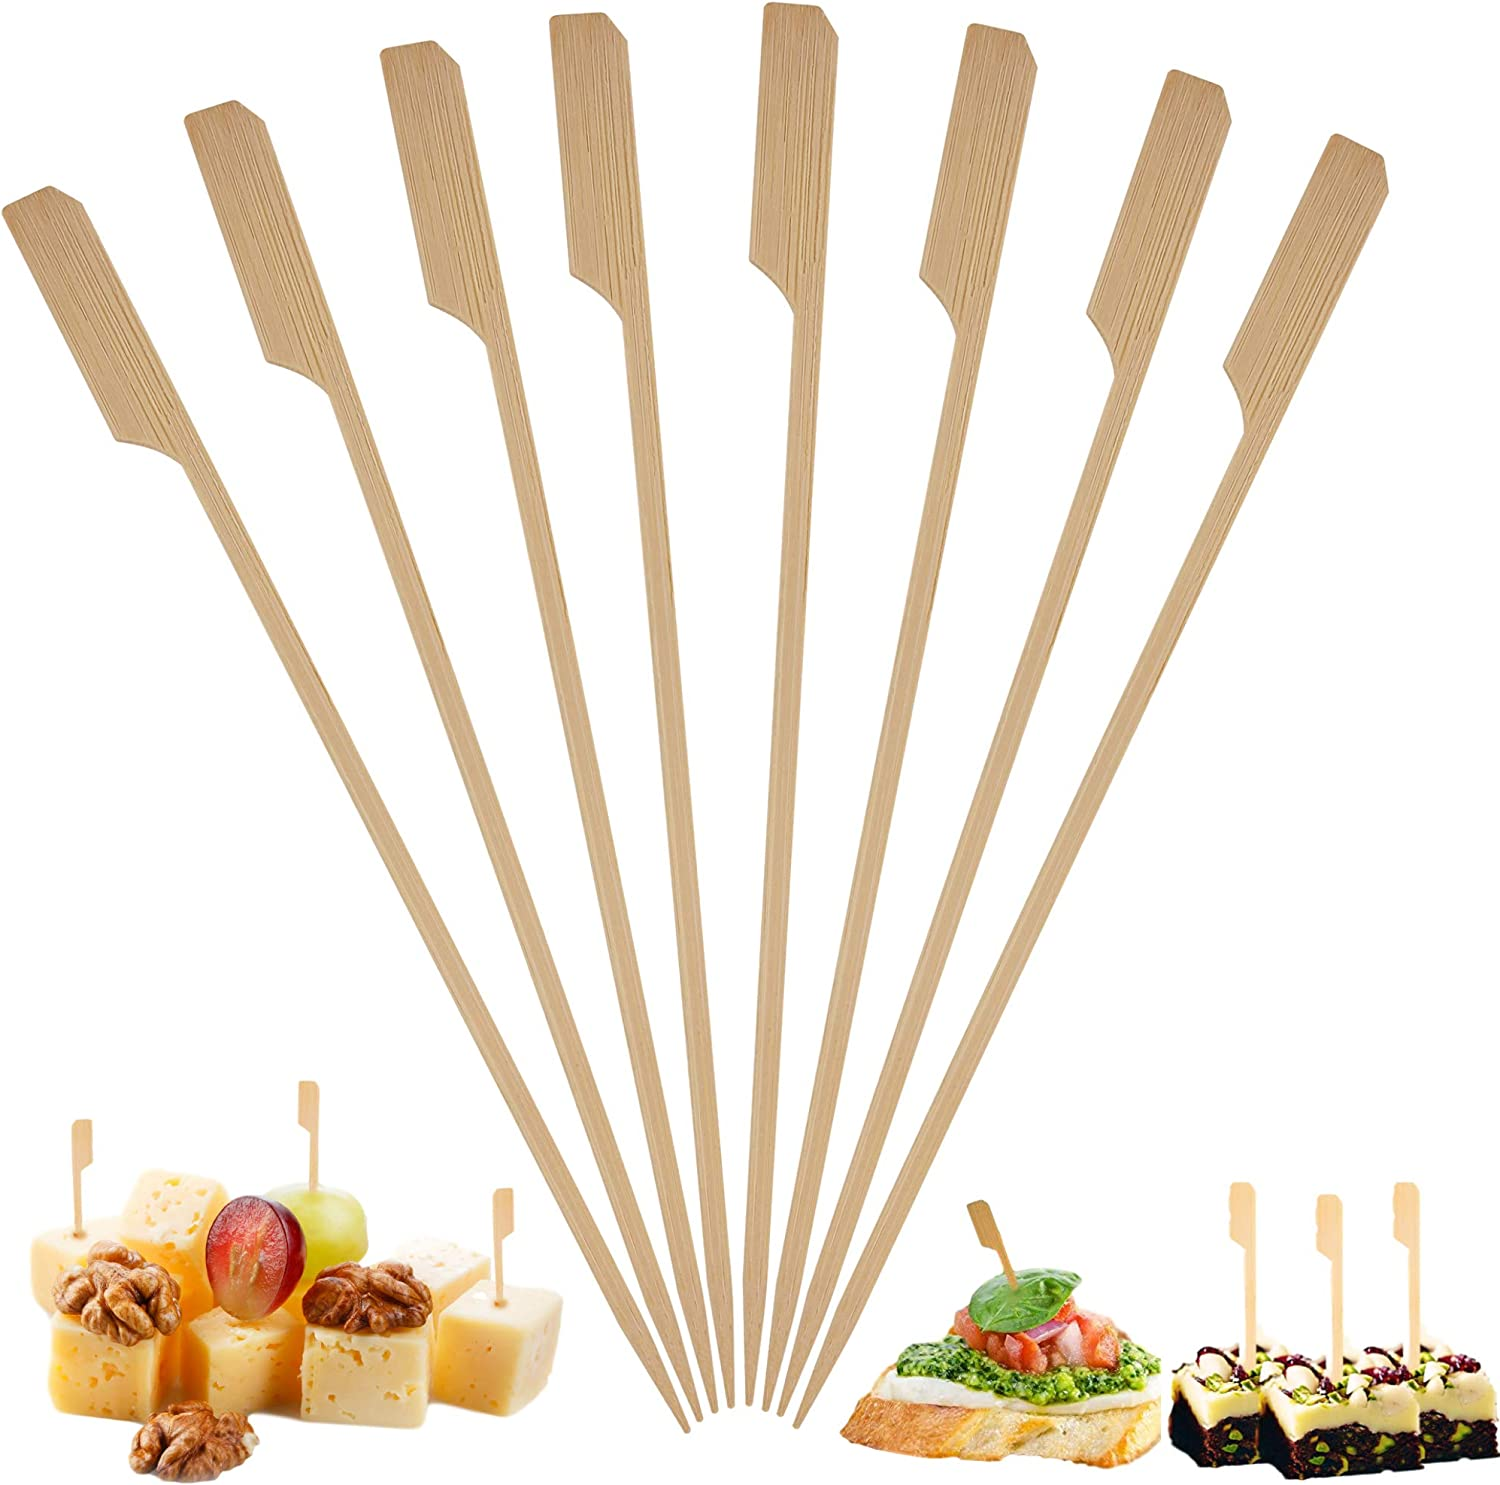 Bamboo Skewers Toothpicks for Appetizer Picks – (500 Pack / 3.5 Inch) Eco Friendly Wooden Cocktail Skewers and Bamboo Toothpicks for Appetizers Food Garnish Sandwich Fruit Kabobs Drinks Cocktail